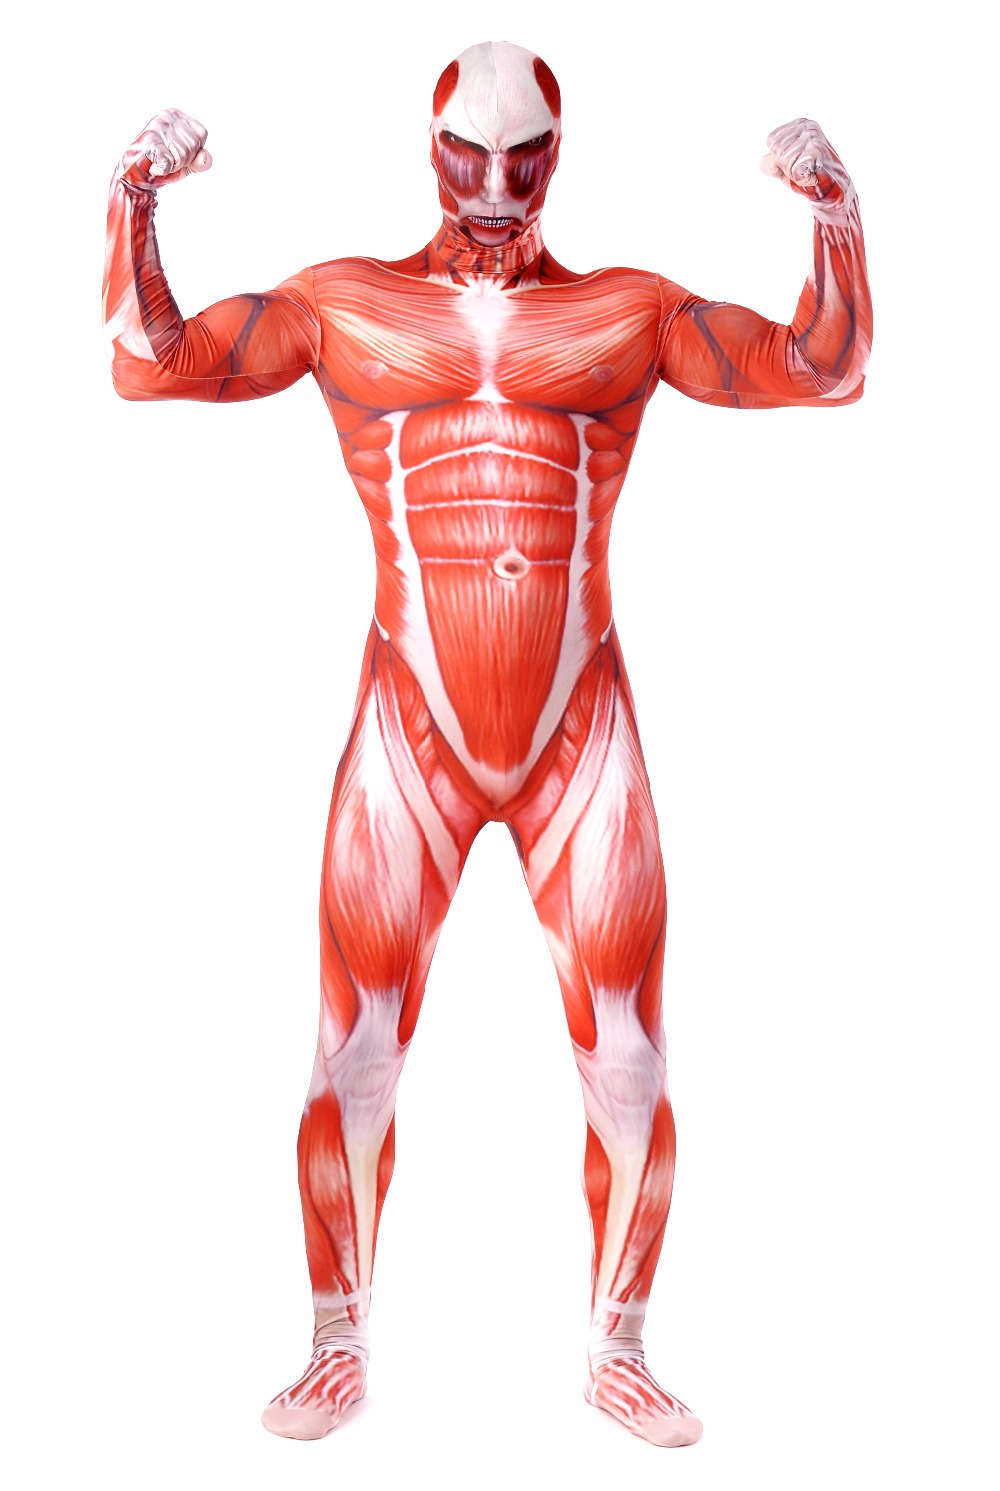 Breathable Attack On Titan Cosplay Costume Zentai Suit Muscle Men's Full Body Spandex Lycra Suit One Piece Spandex Catsuits